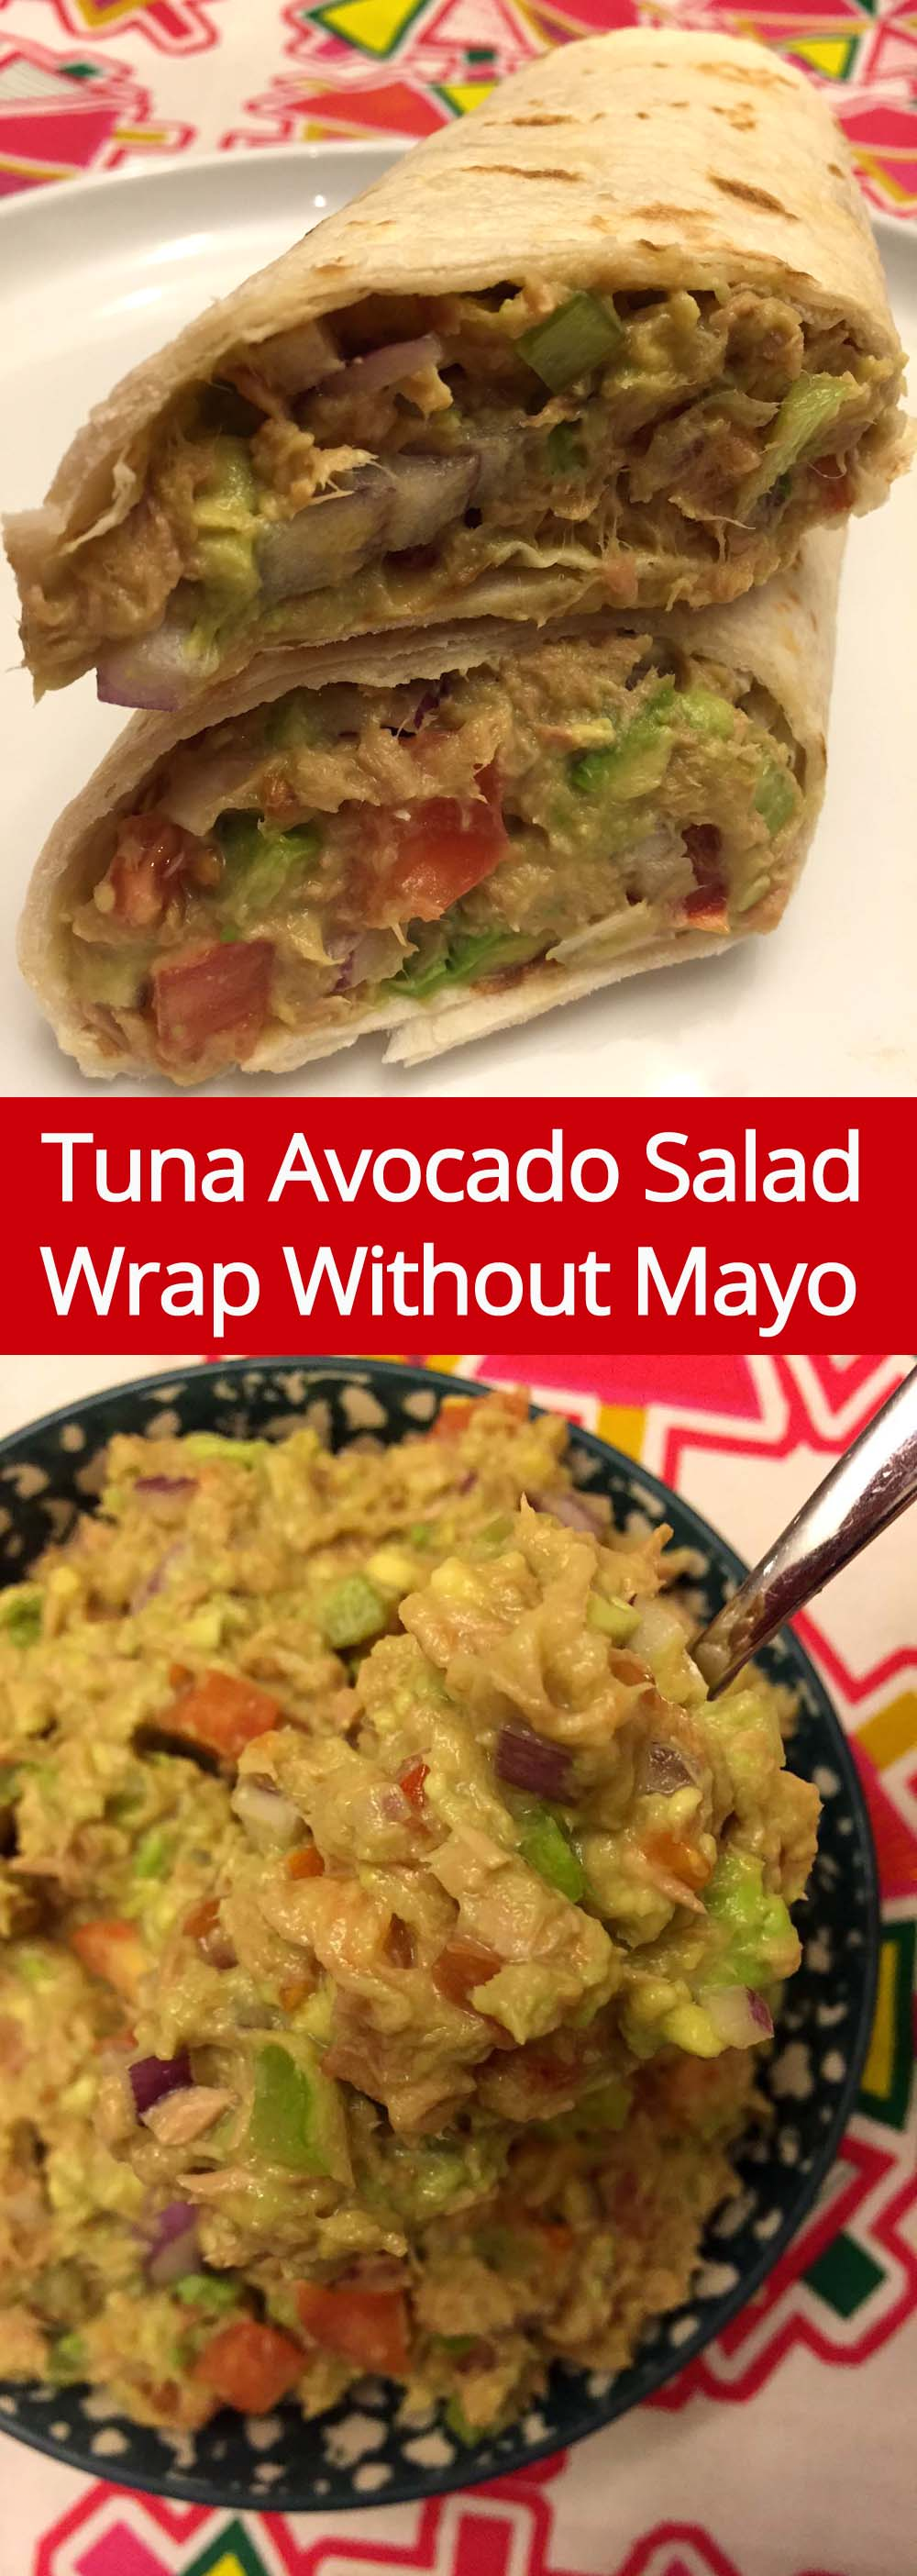 These tuna avocado salad wraps are so easy to make, healthy and delicious! I love to have the tuna avocado wrap for lunch!